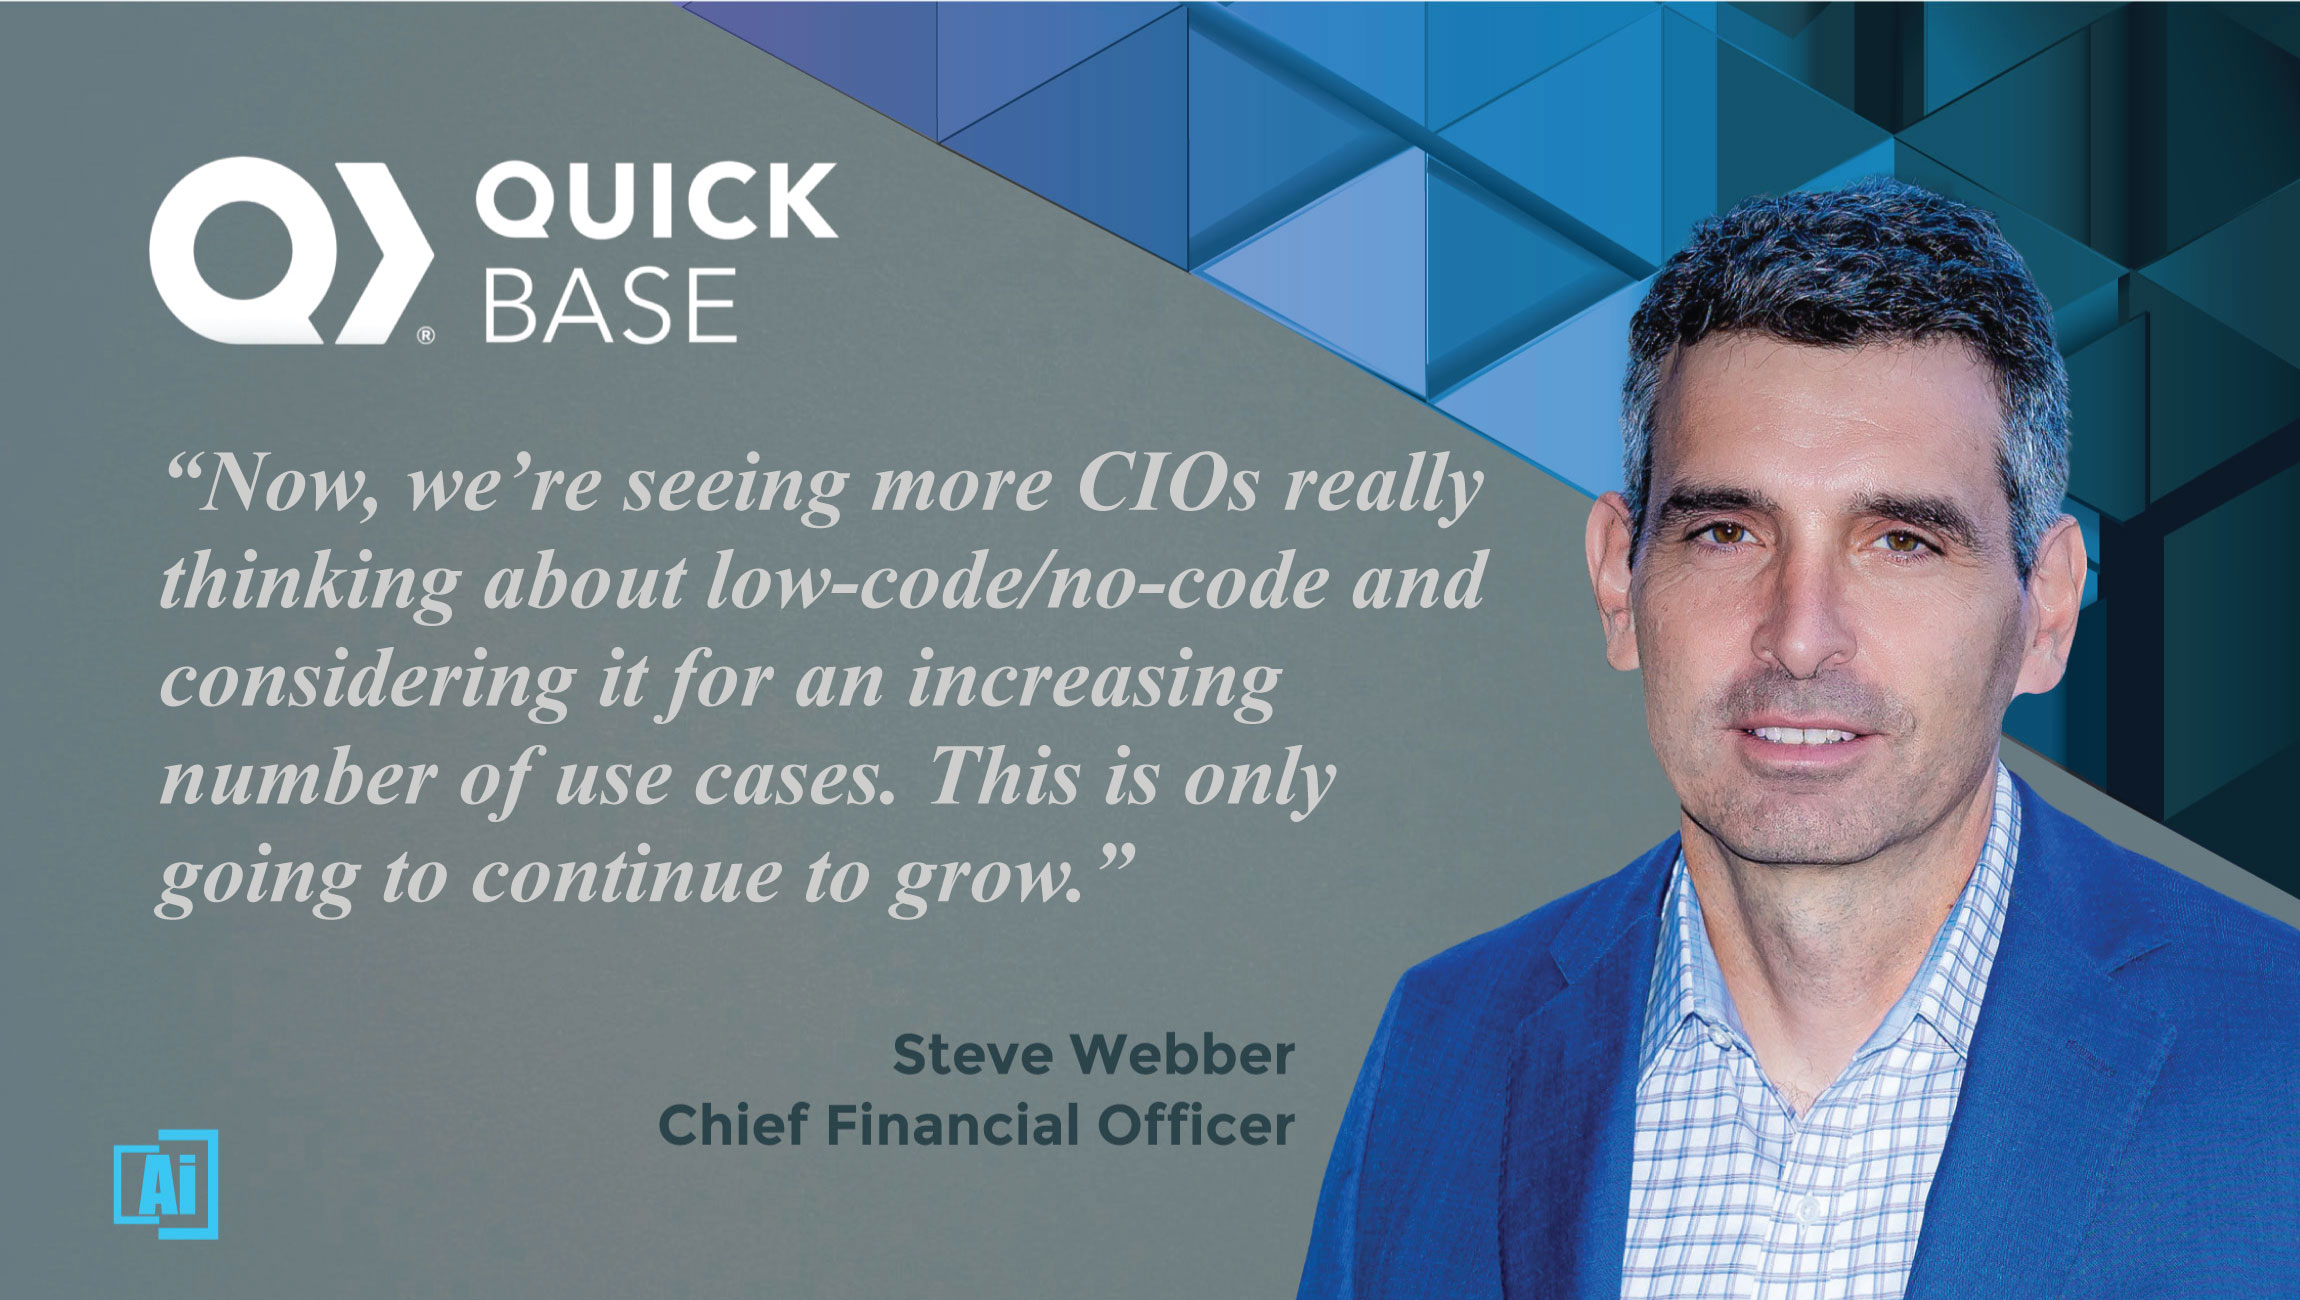 AiThority Interview With Steve Webber, Chief Financial Officer at Quickbase